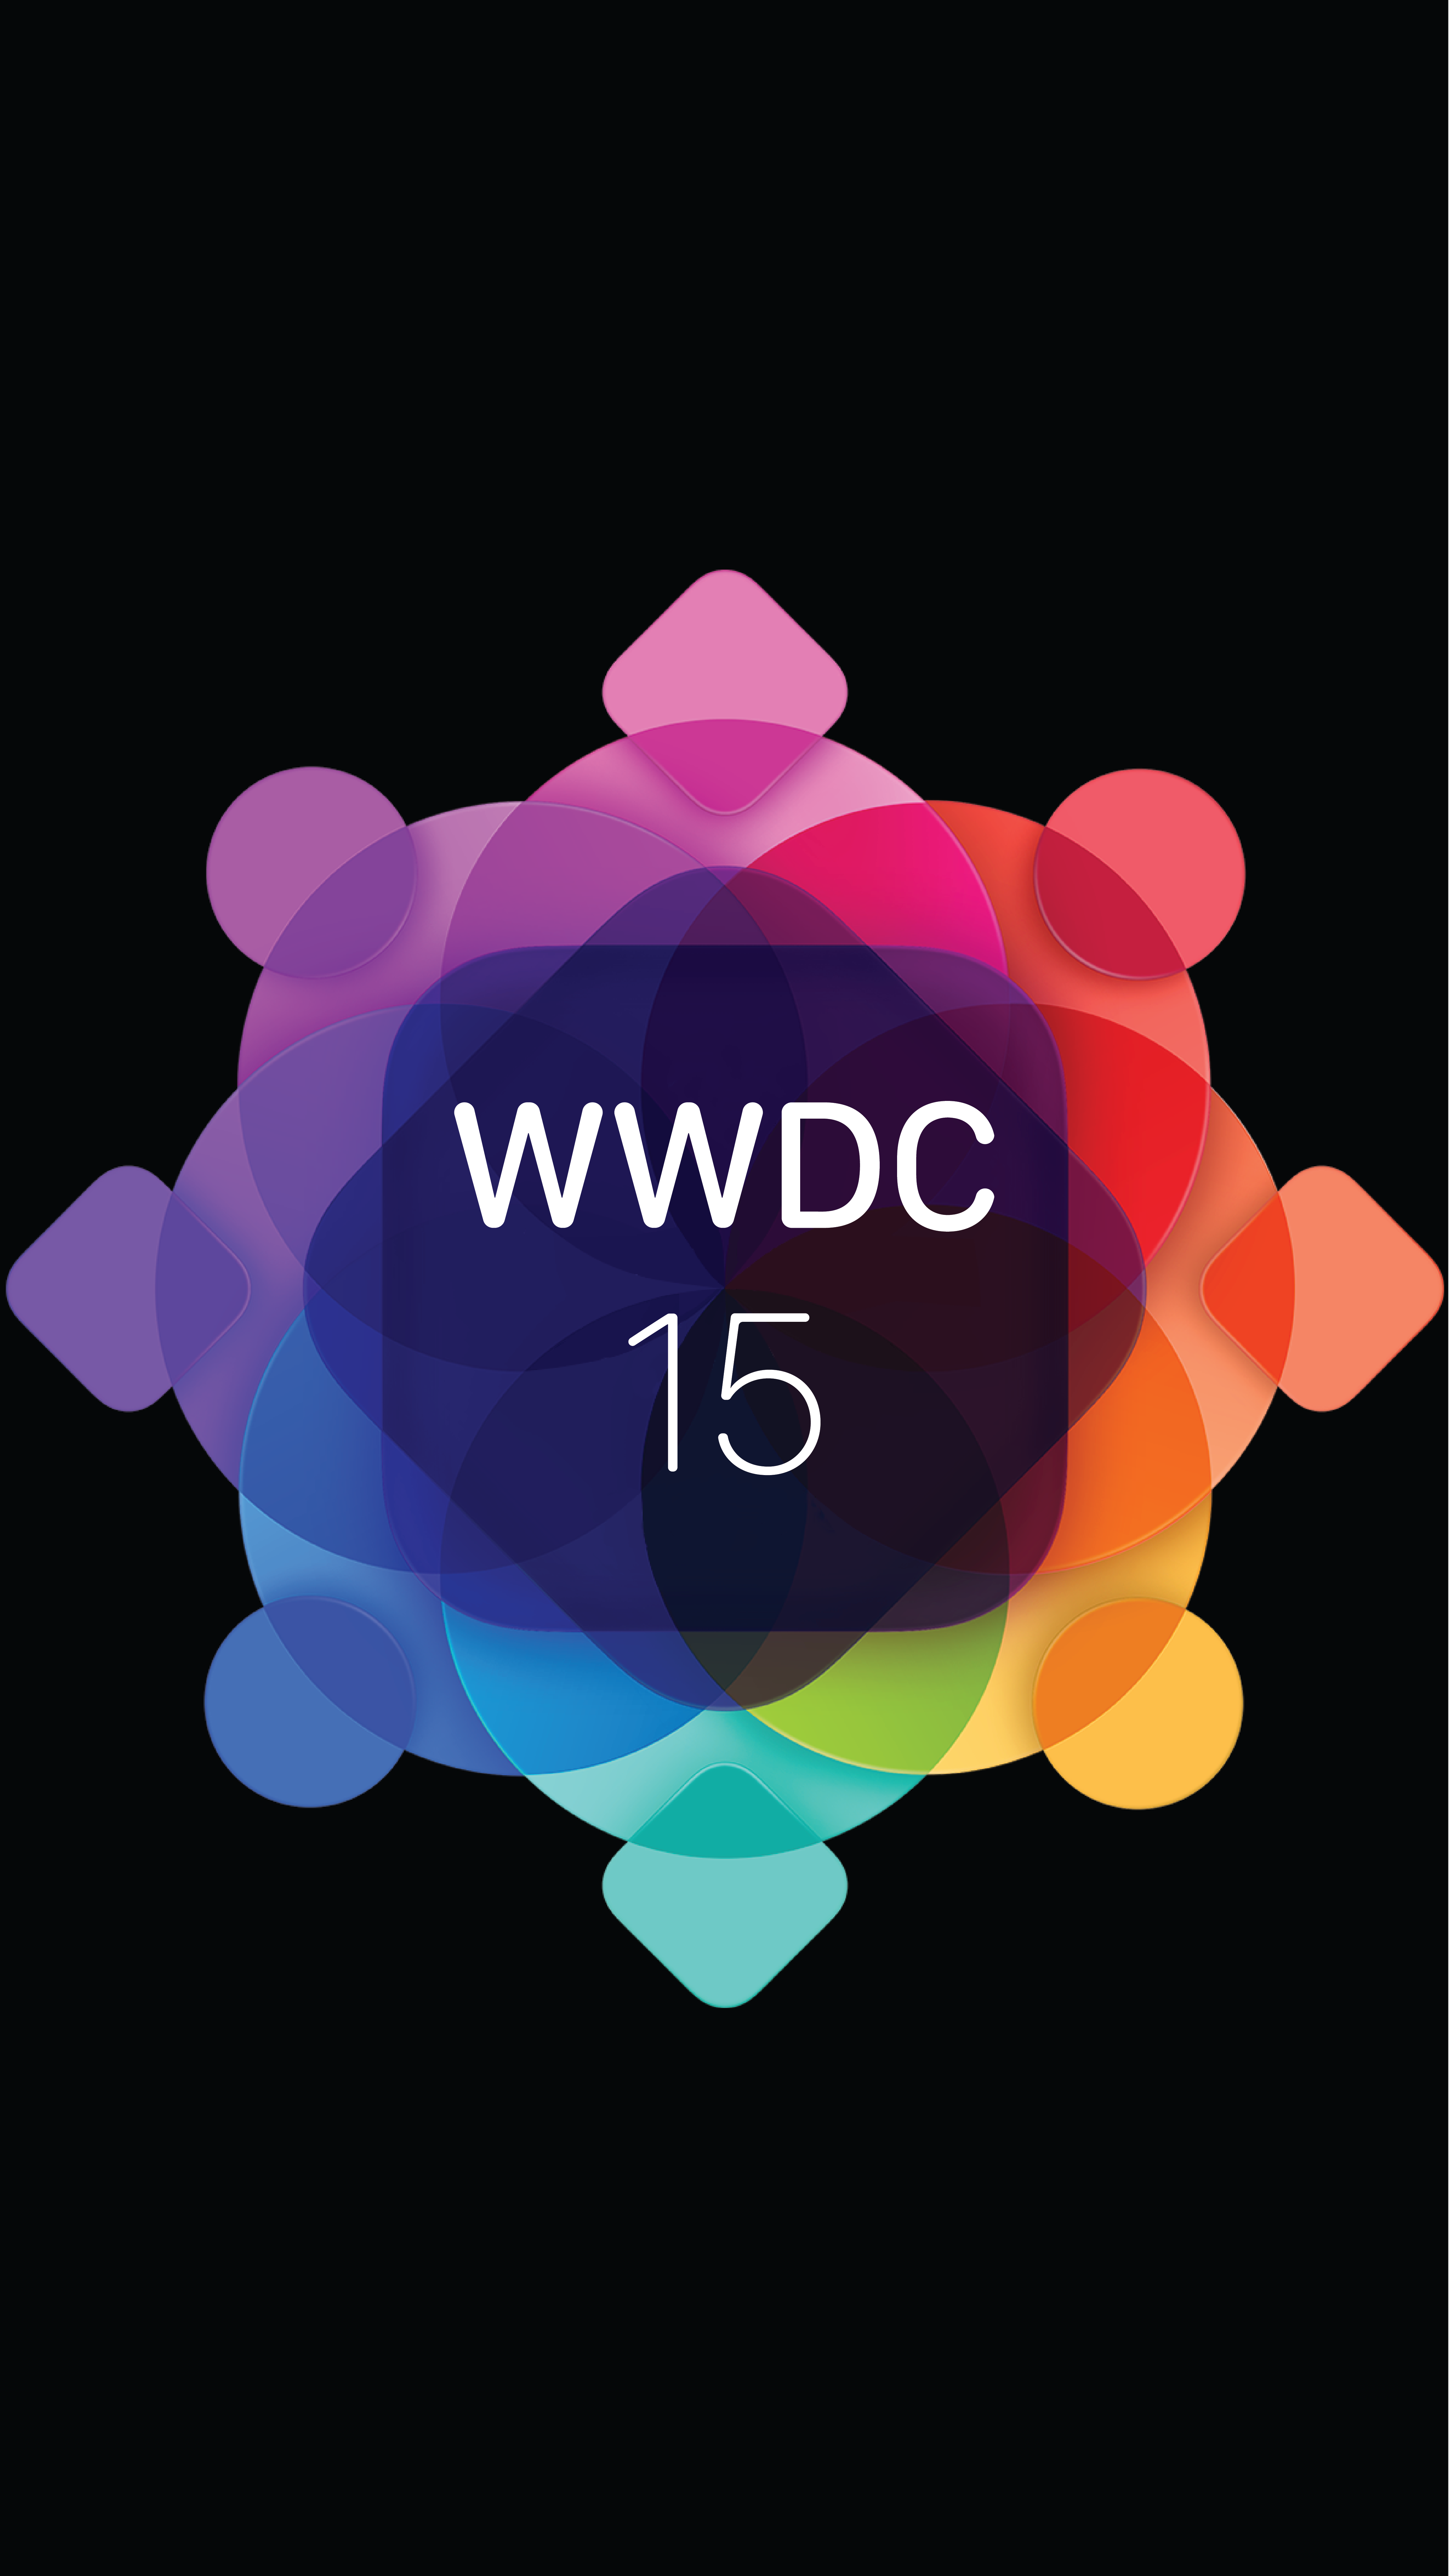 wallpaper WWDC 2015 iPhone 6